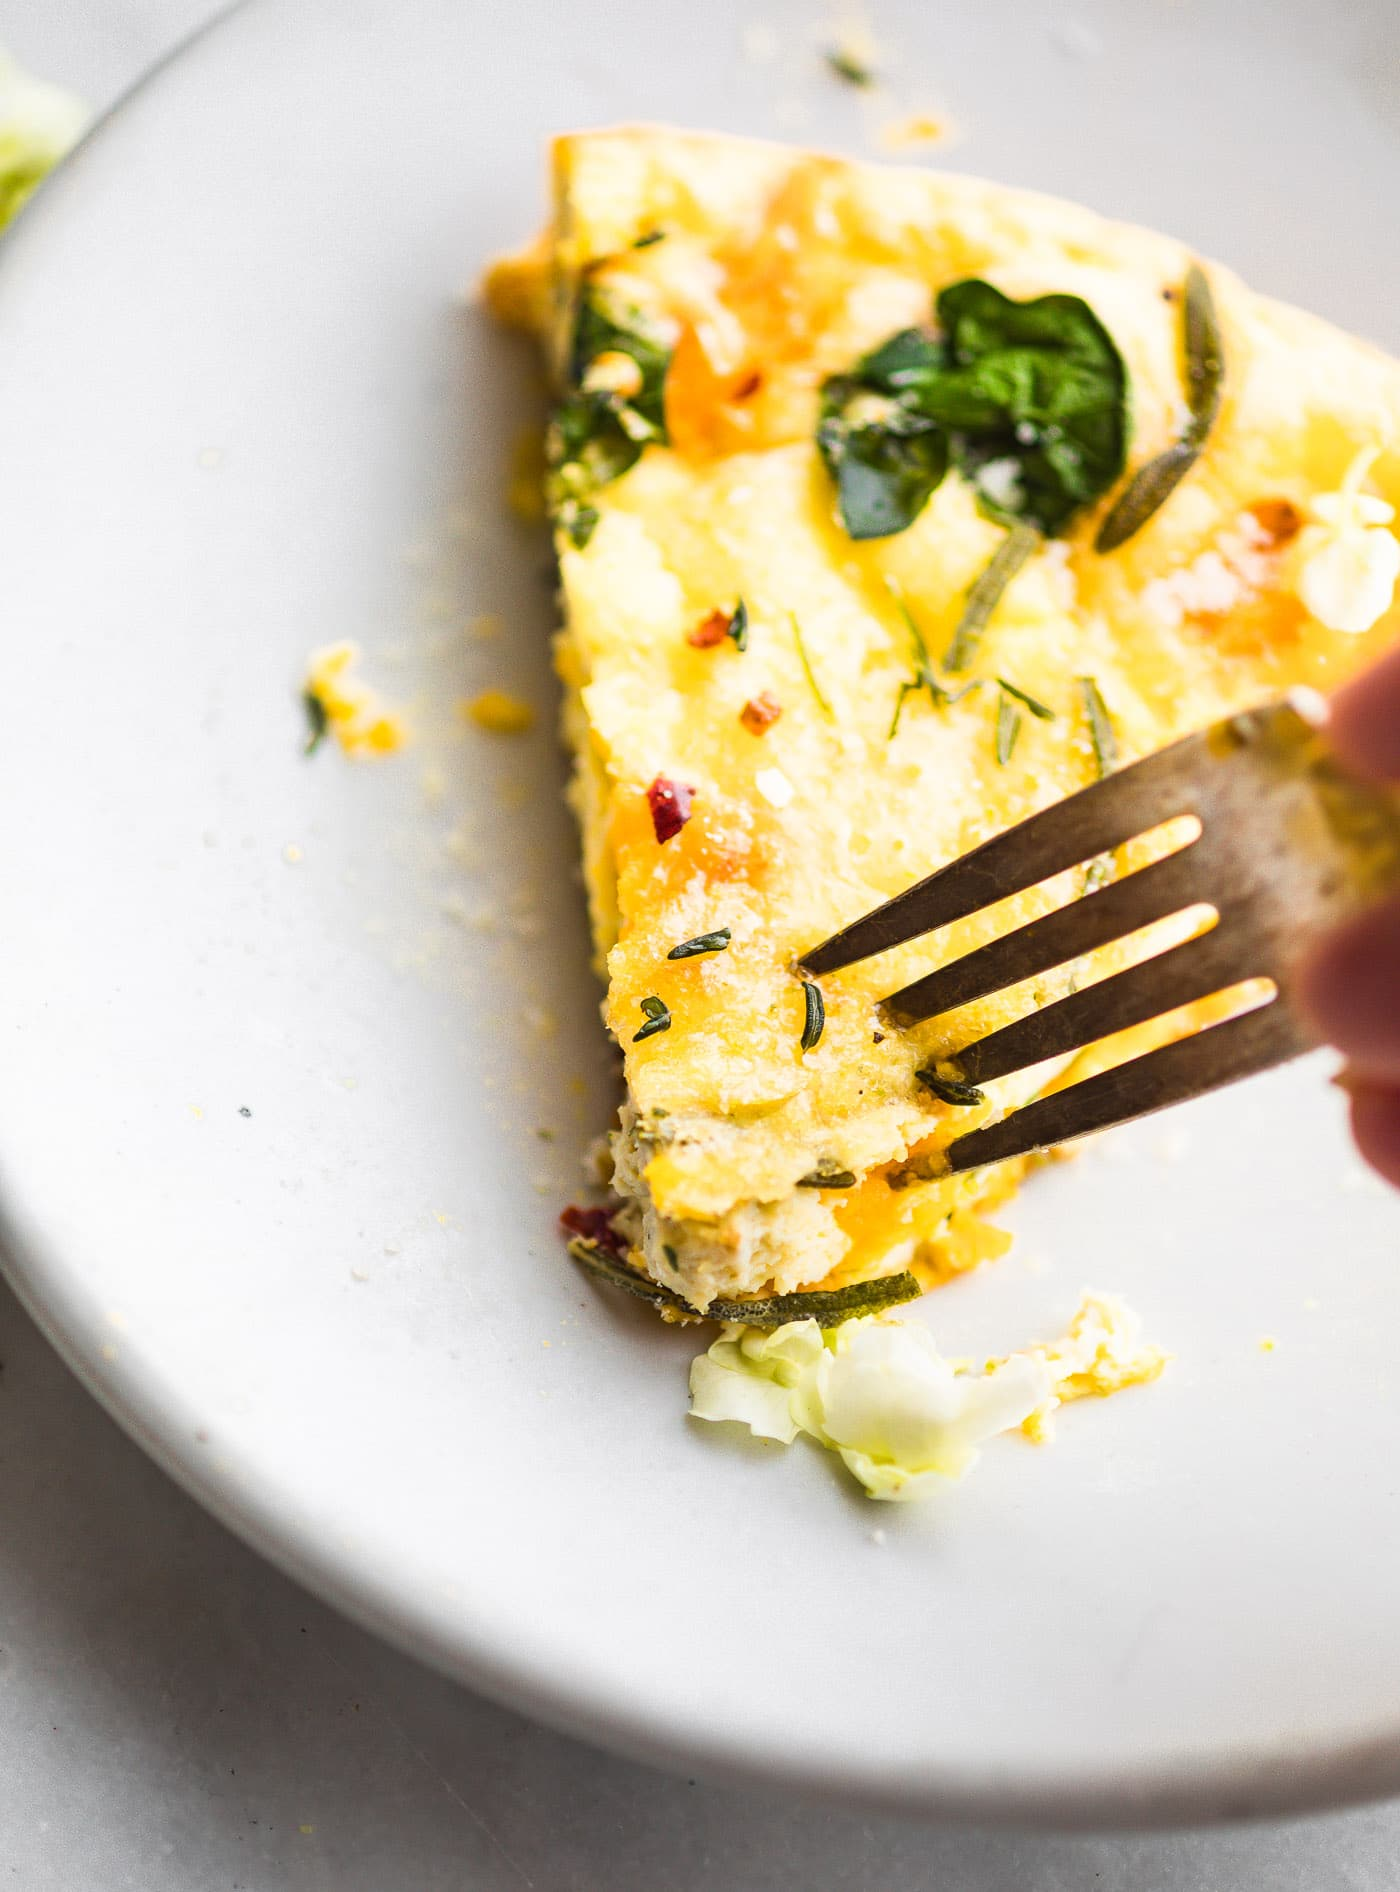 Pumpkin Paleo Frittata with Fried Garlic and Herbs #lowcarb #paleo